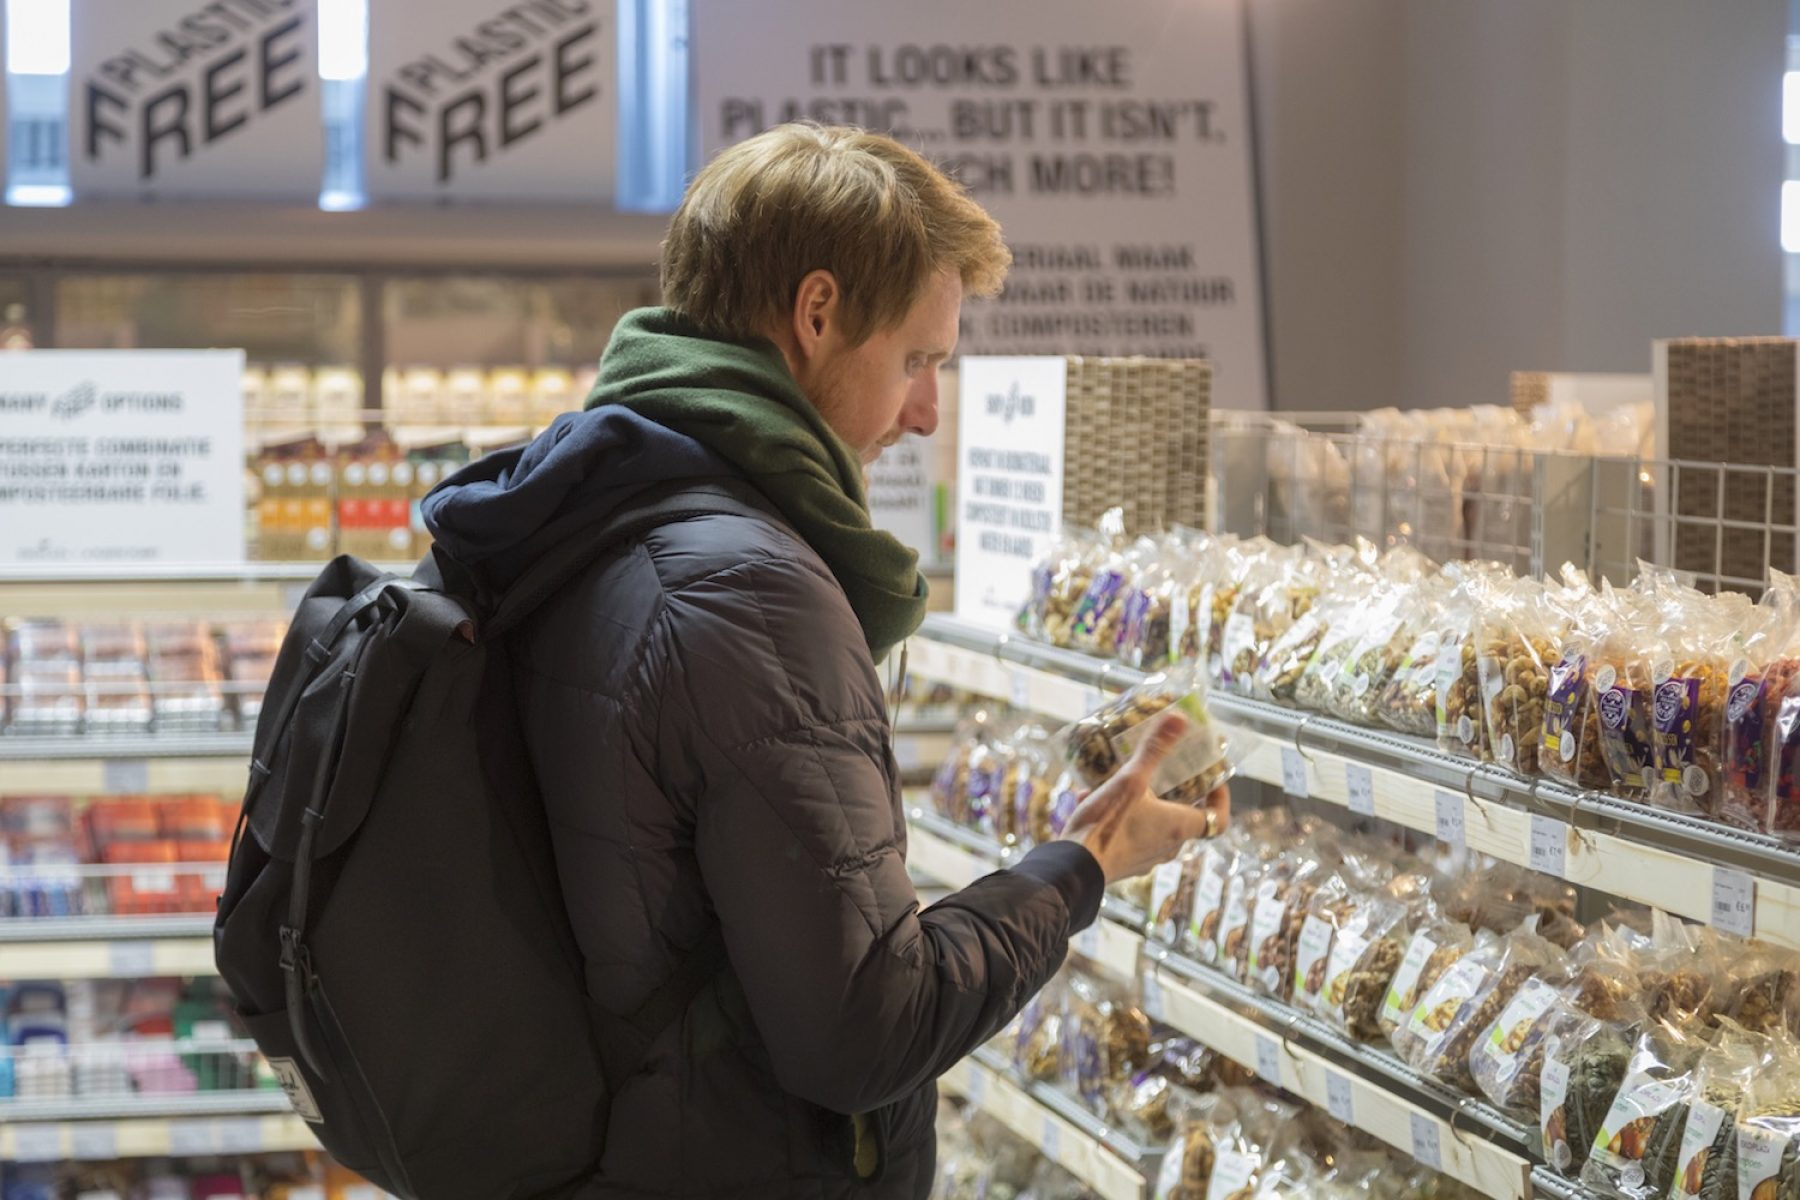 Image for World's first plastic-free supermarket aisle opens